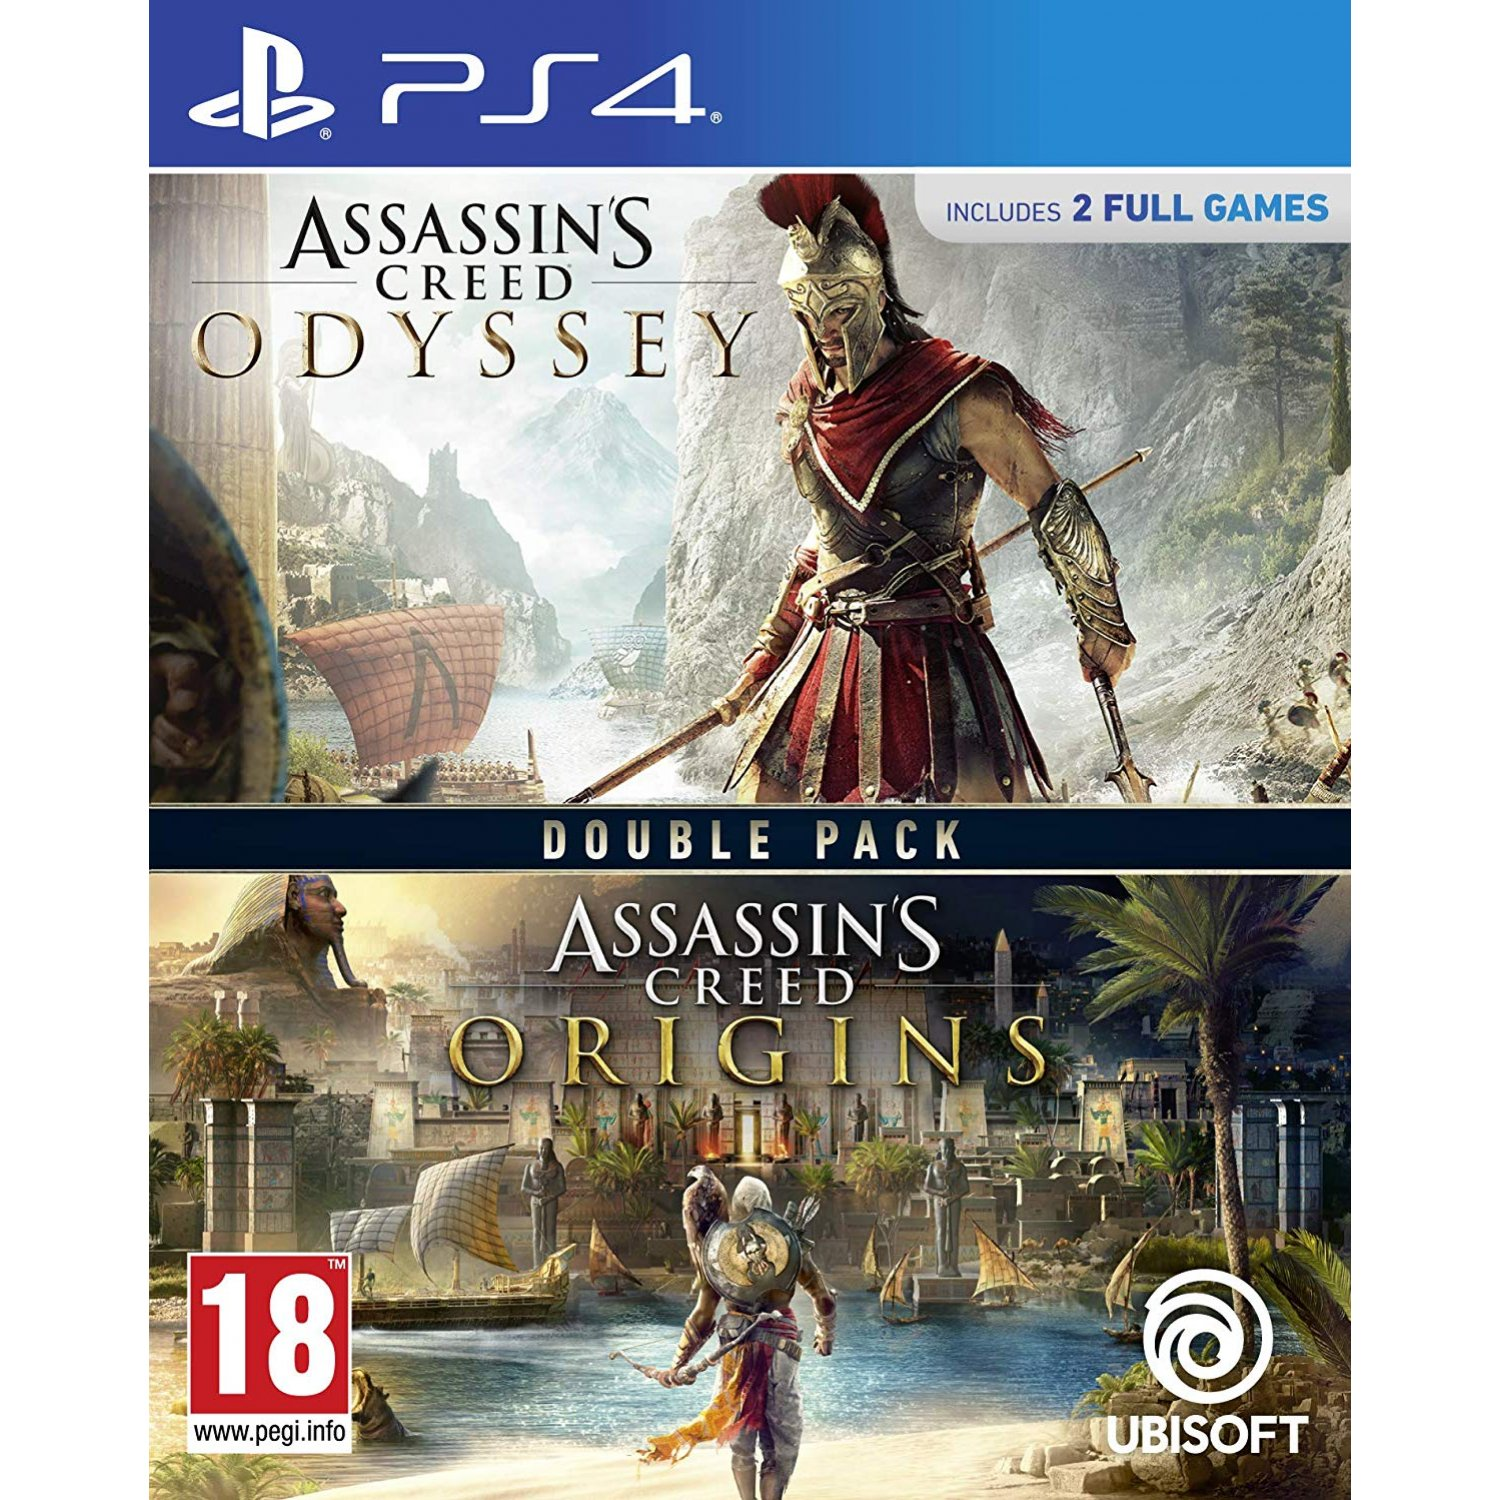 Assassins Creed Odyssey And Origins Double Pack